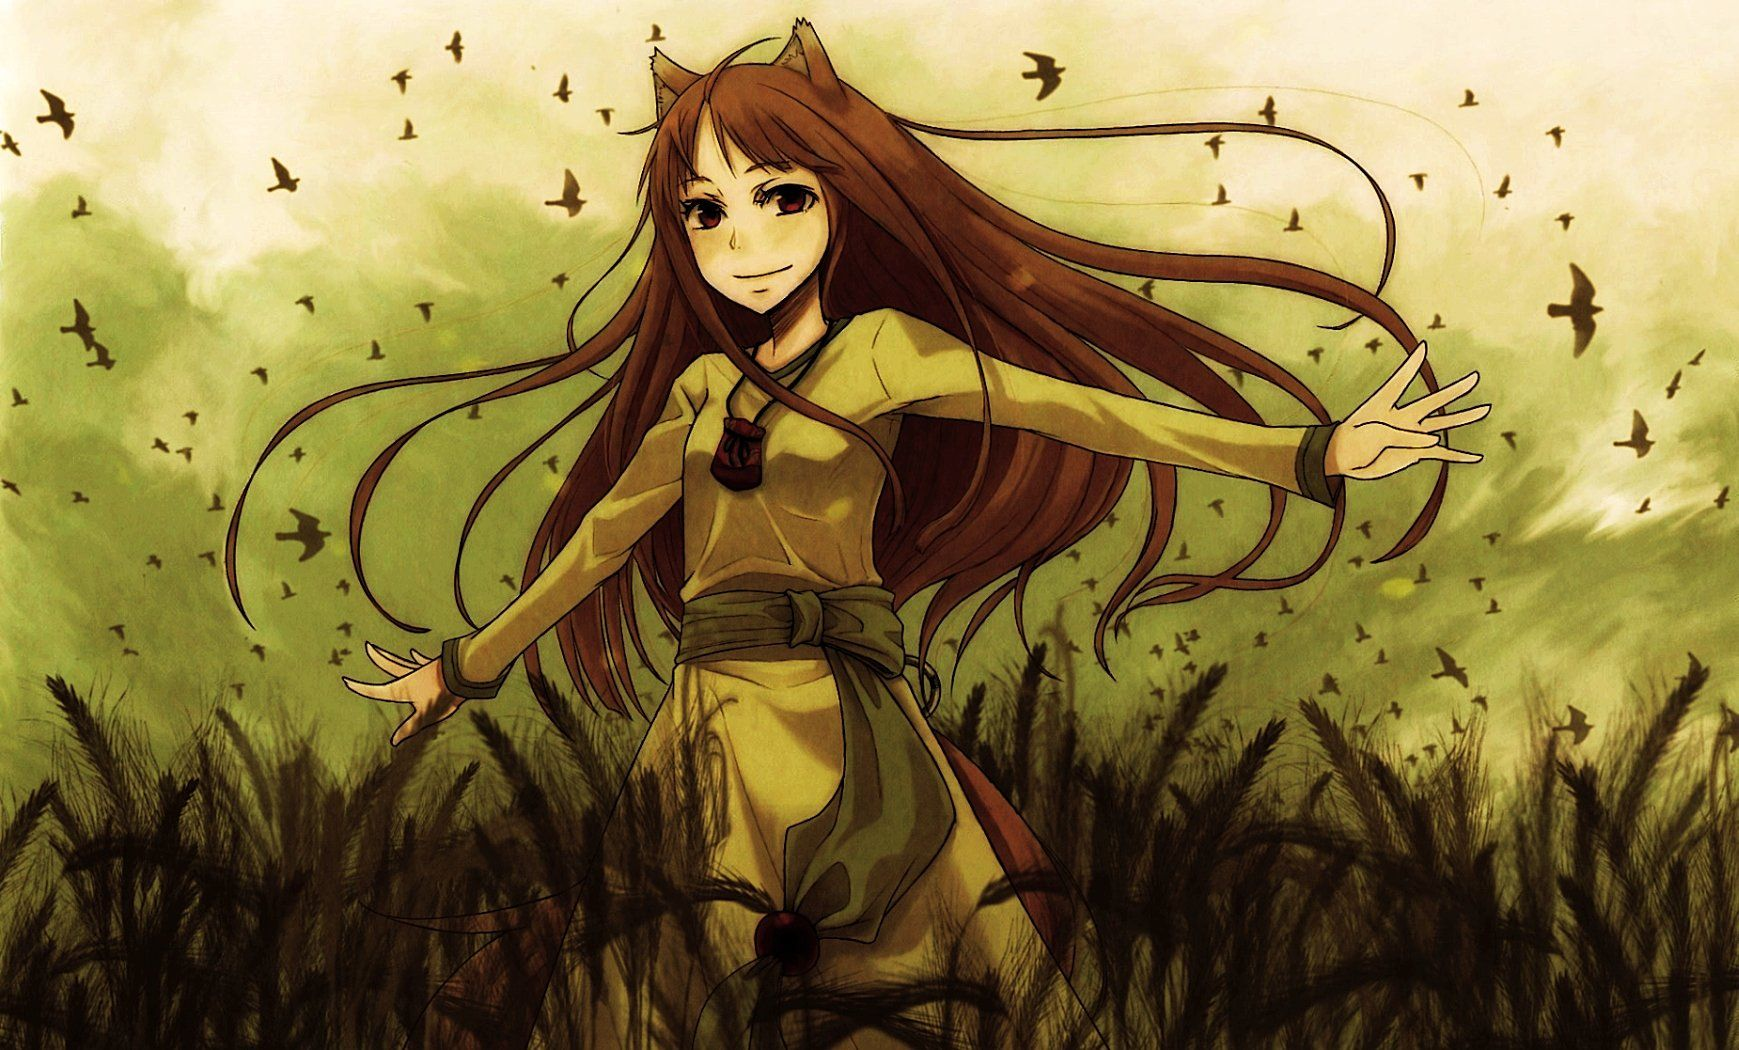 Spice And Wolf Wallpaper Id 1024 768 Spice And Wolf Wallpapers 23 Wallpapers Adorable Wallpapers Spice And Wolf Wolf Wallpaper Scenery Wallpaper